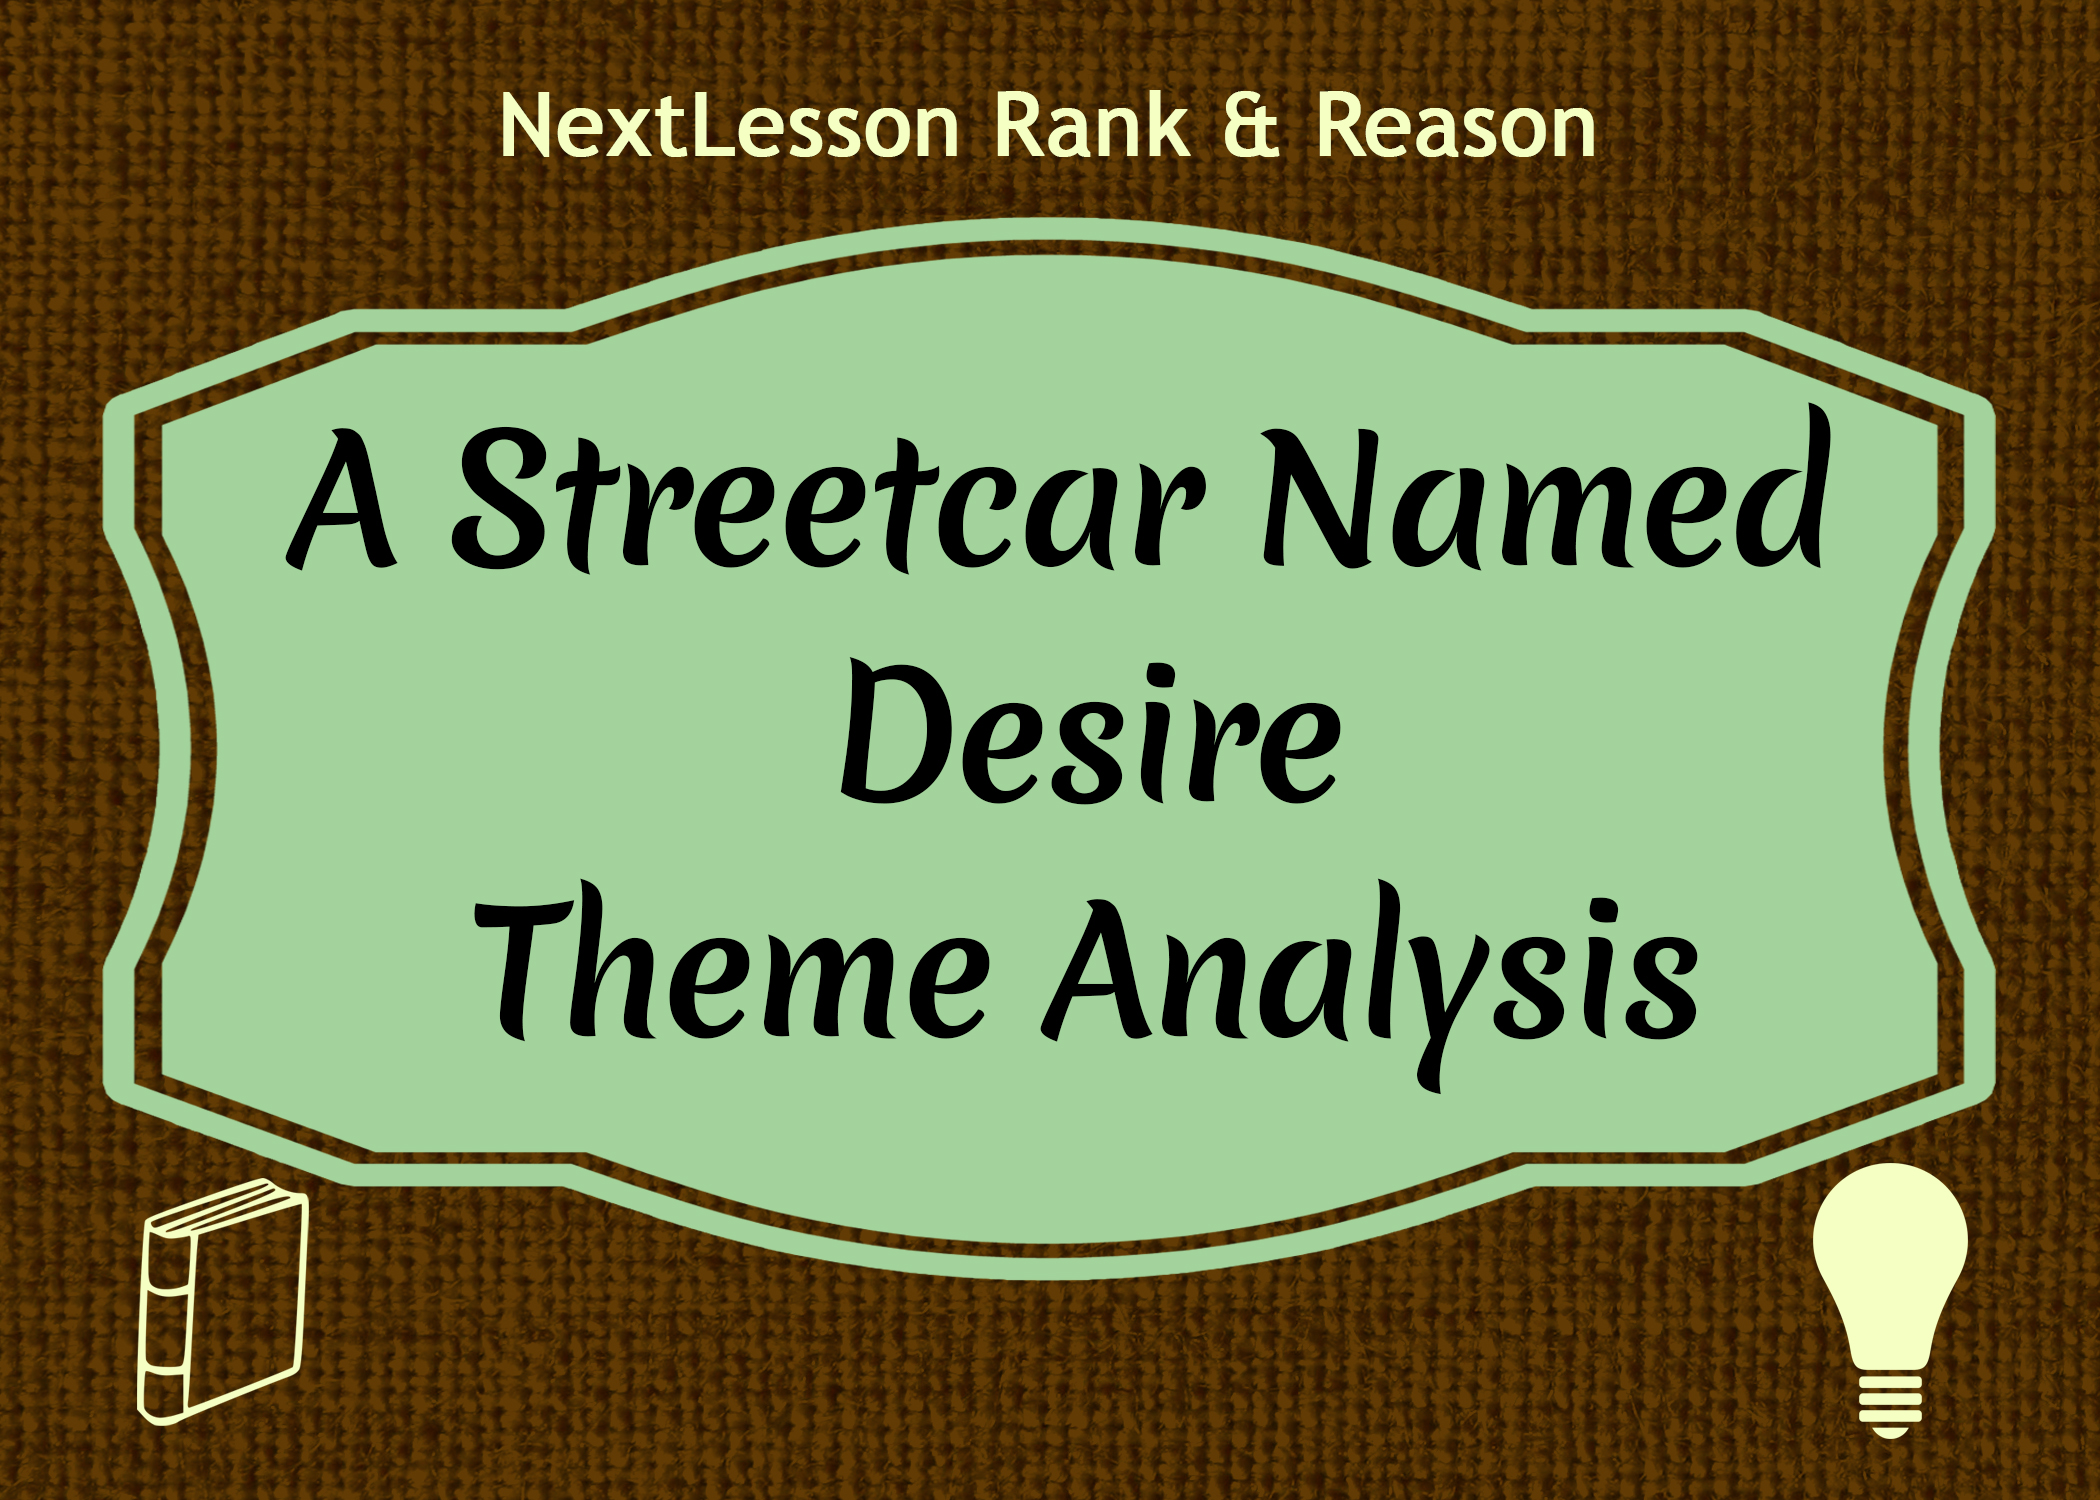 streetcar named desire essay themes